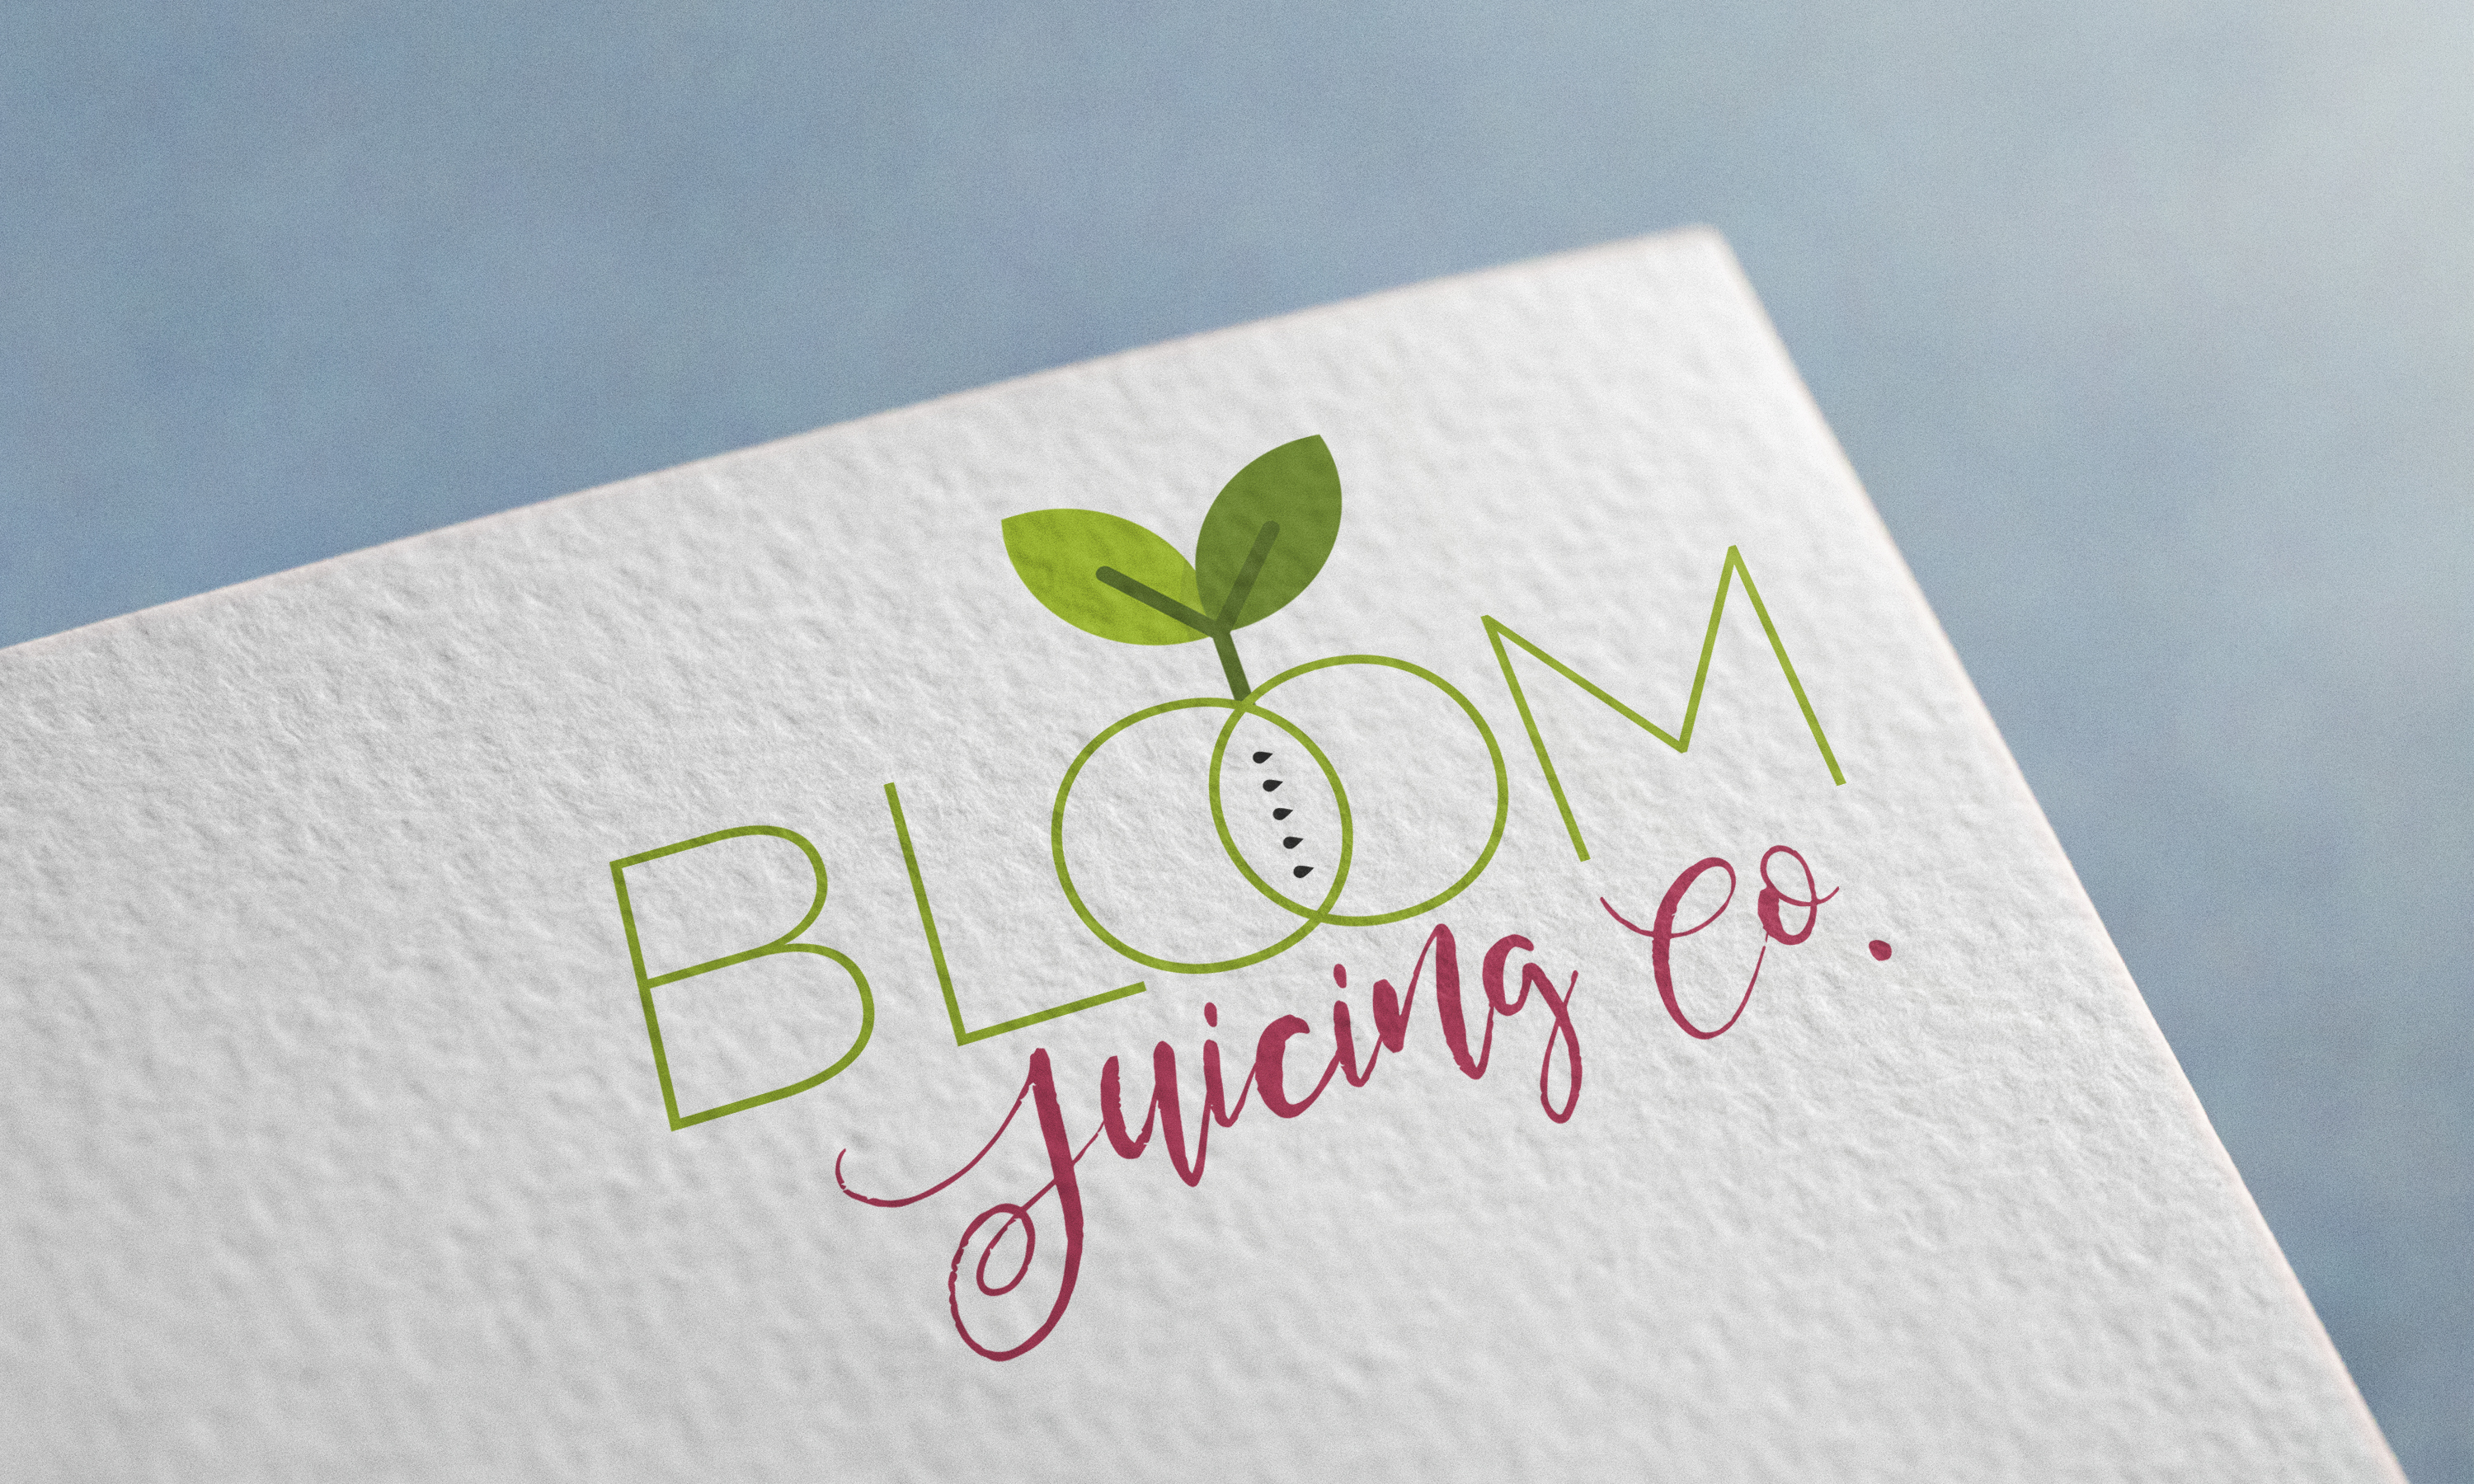 BLOOM JUICING CO